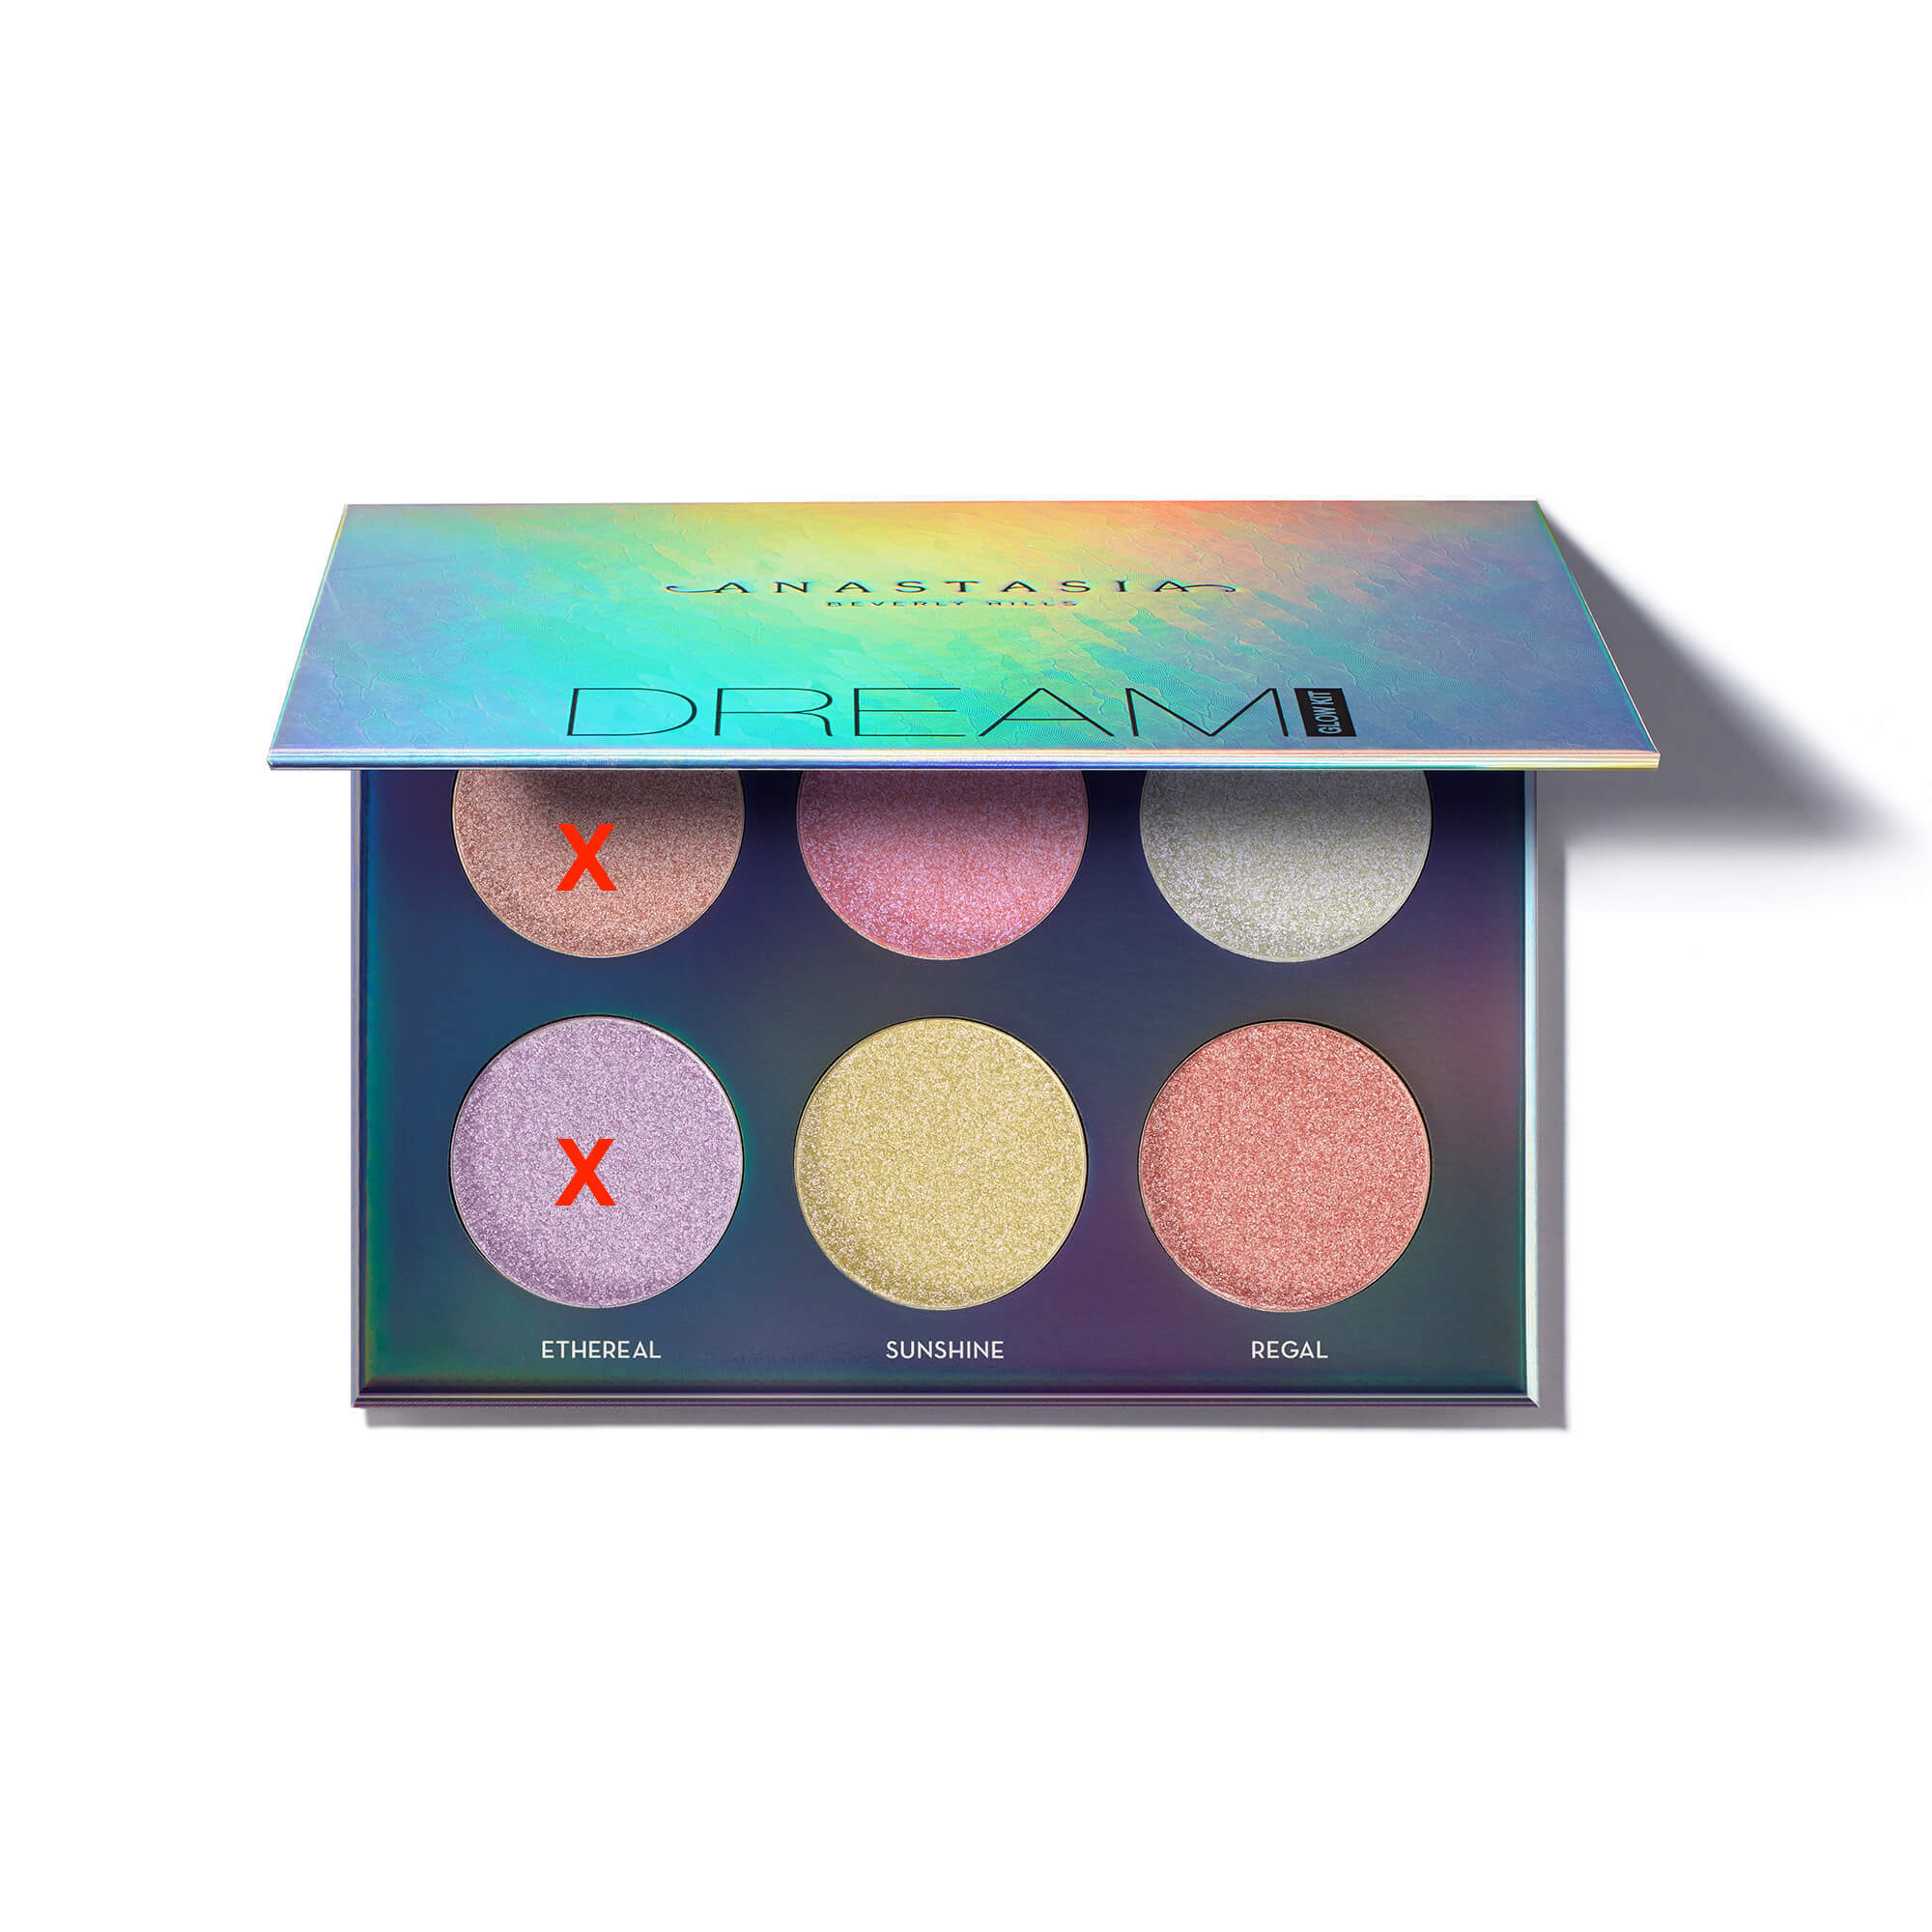 Anastasia Dream Glow Kit (without wish and ethereal)